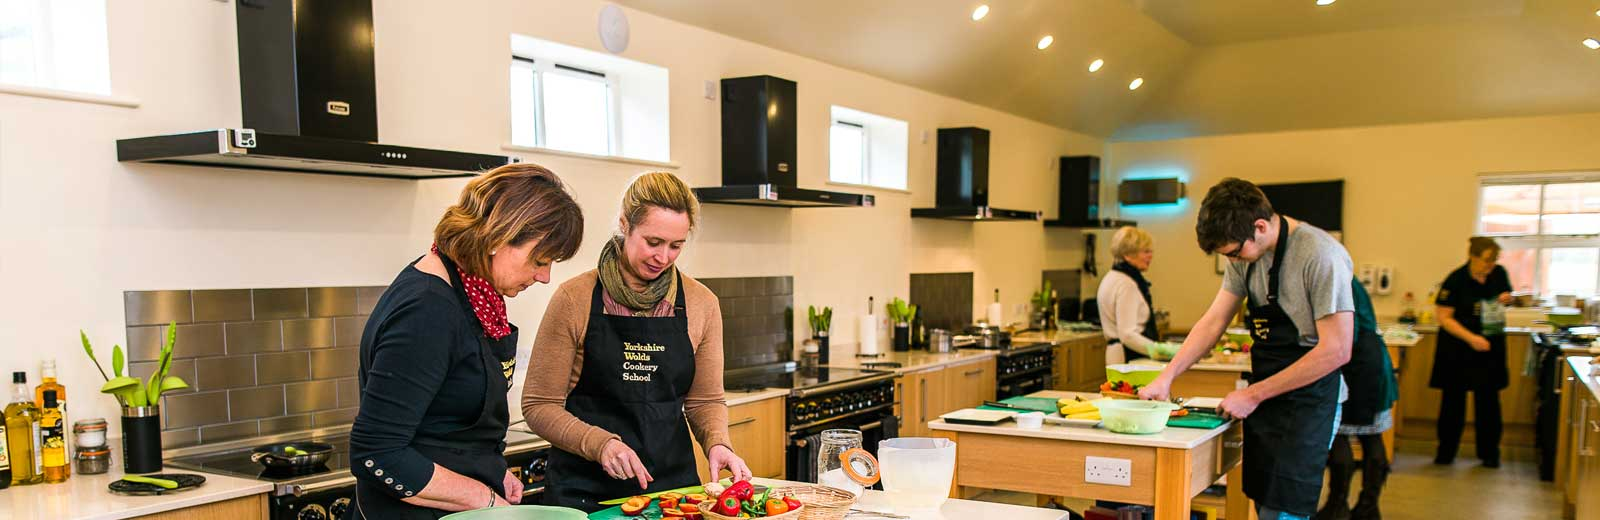 Cookery Classes taking place at Yorkshire Wolds Cookery School